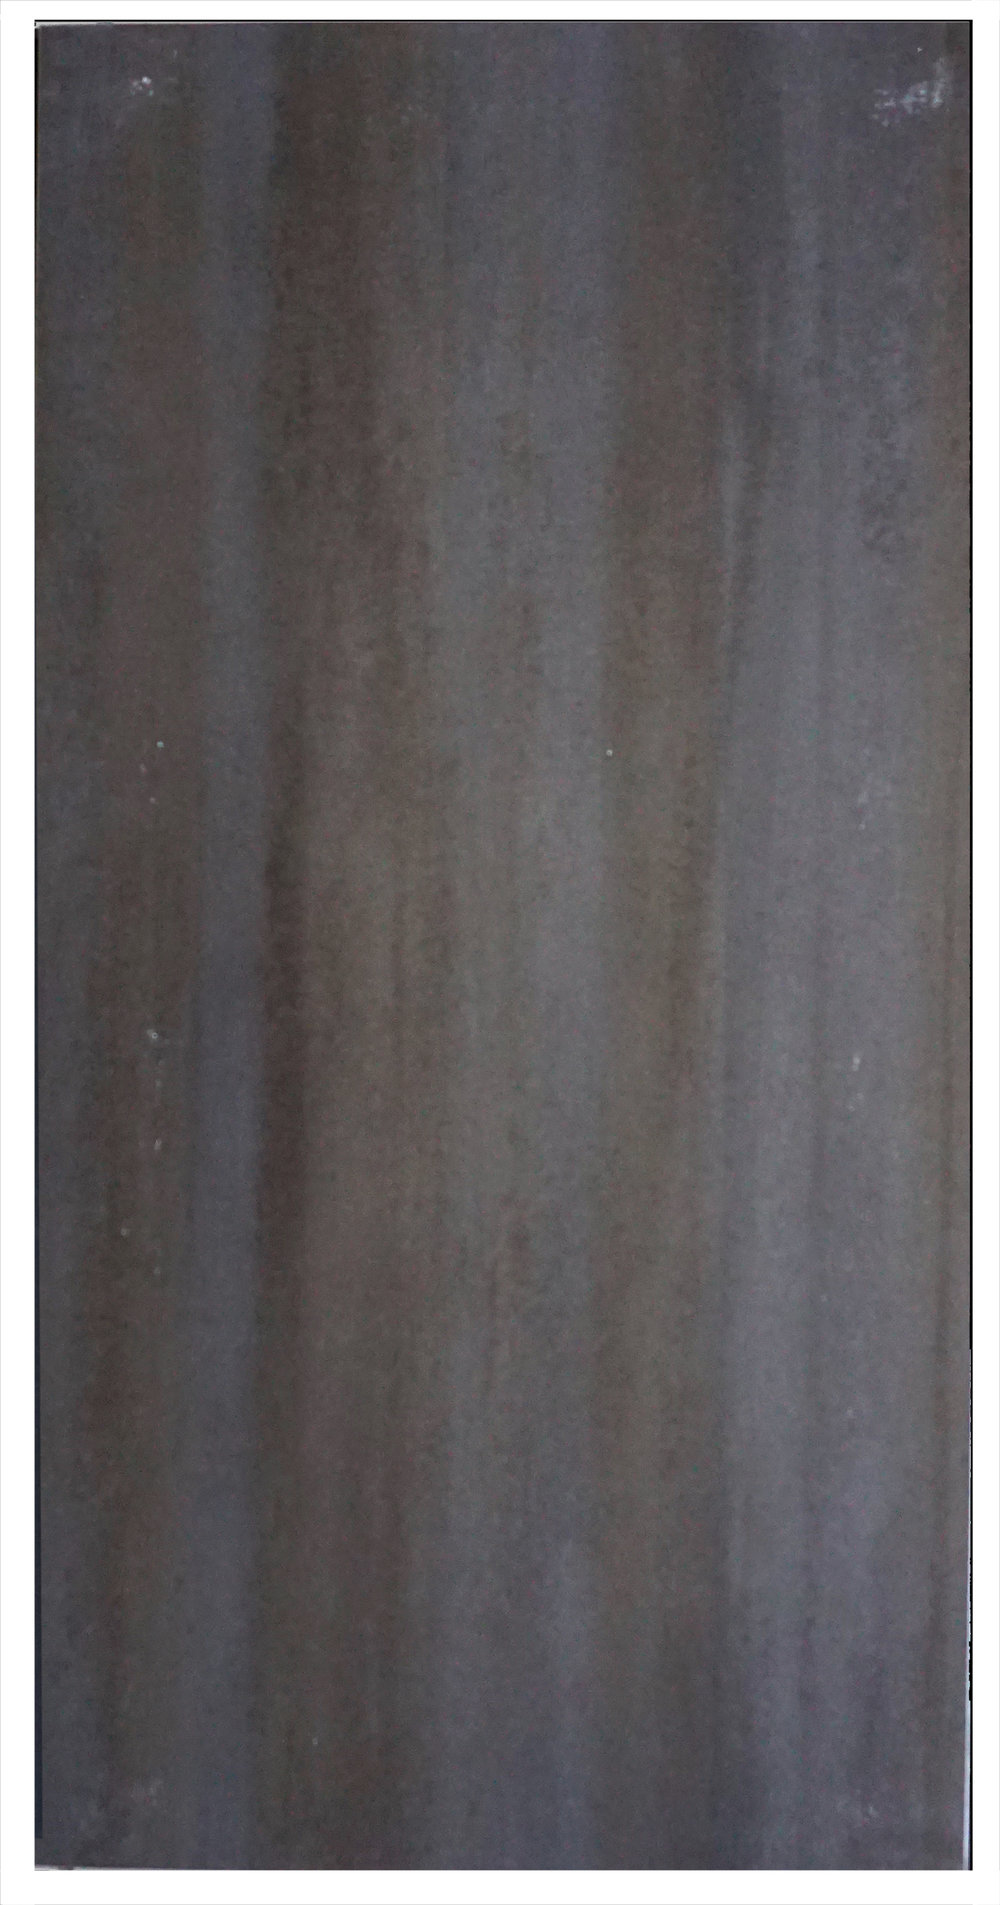 "GALAXY CHOCOLATE 12""X24"" - GLAZED PORCELAIN 8 PC/CTN (15.5 SF); 40 CTN/PLT"